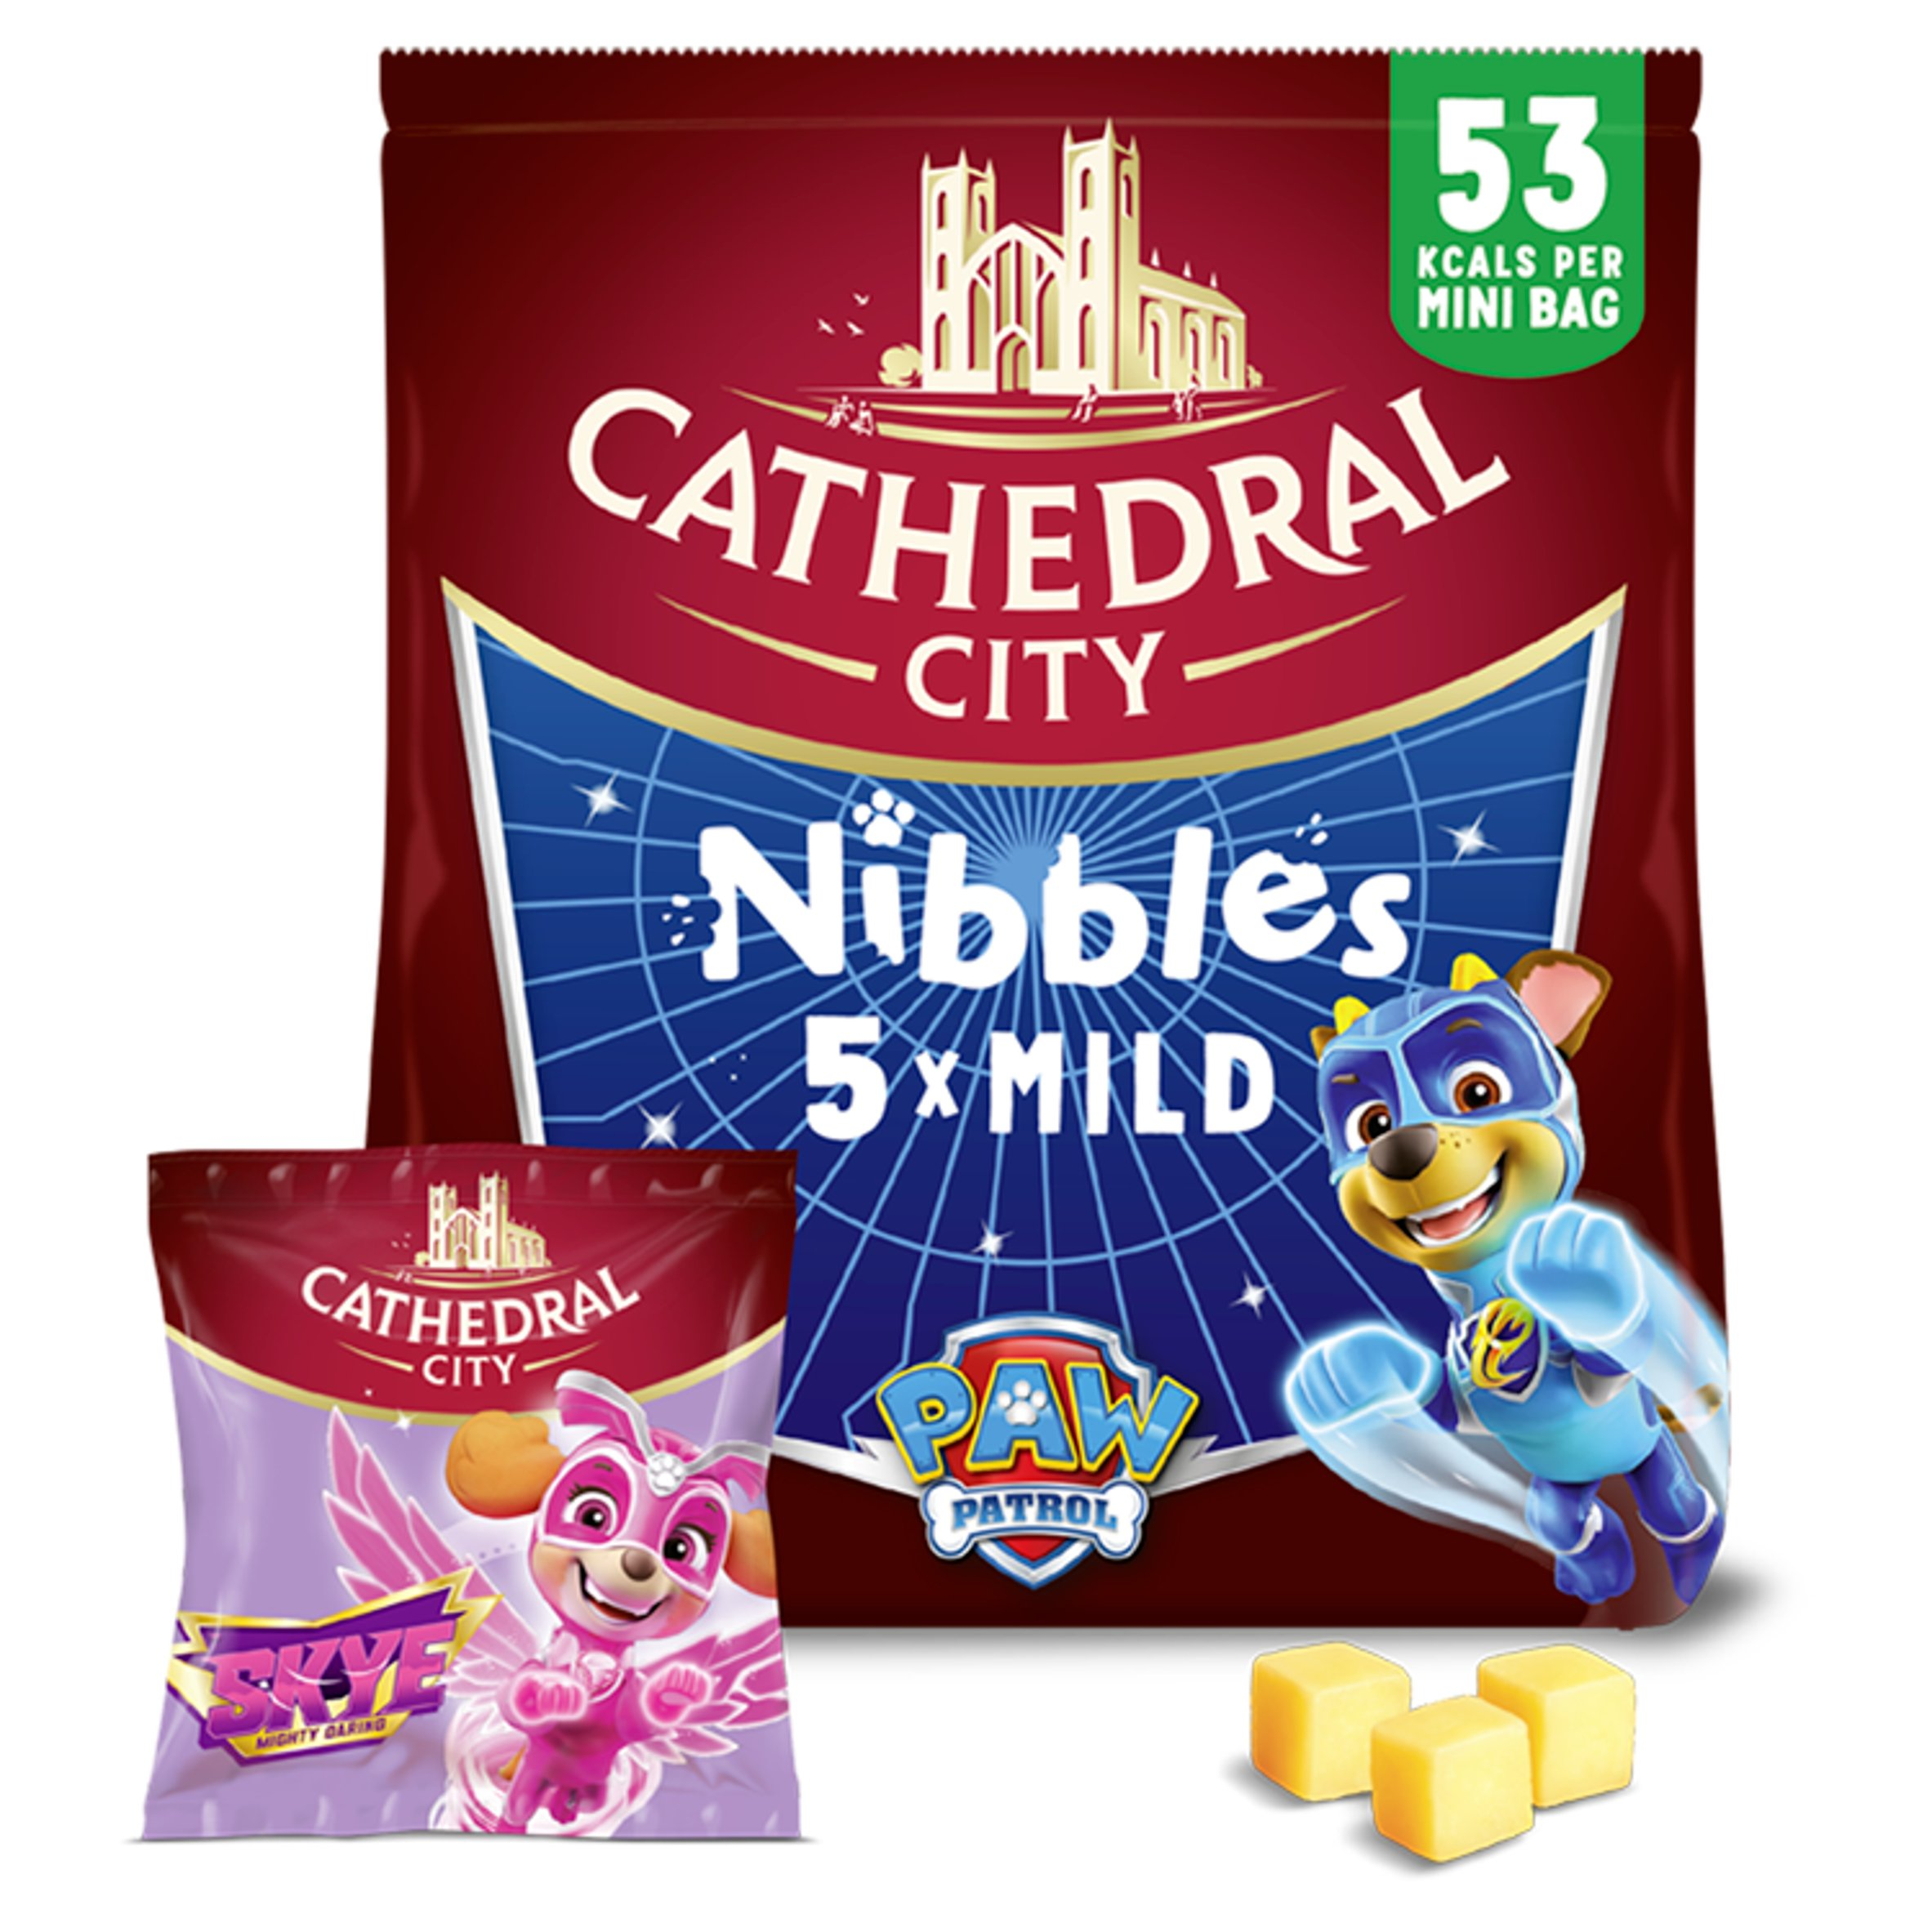 Cathedral City Nibbles Cheese 5X16g